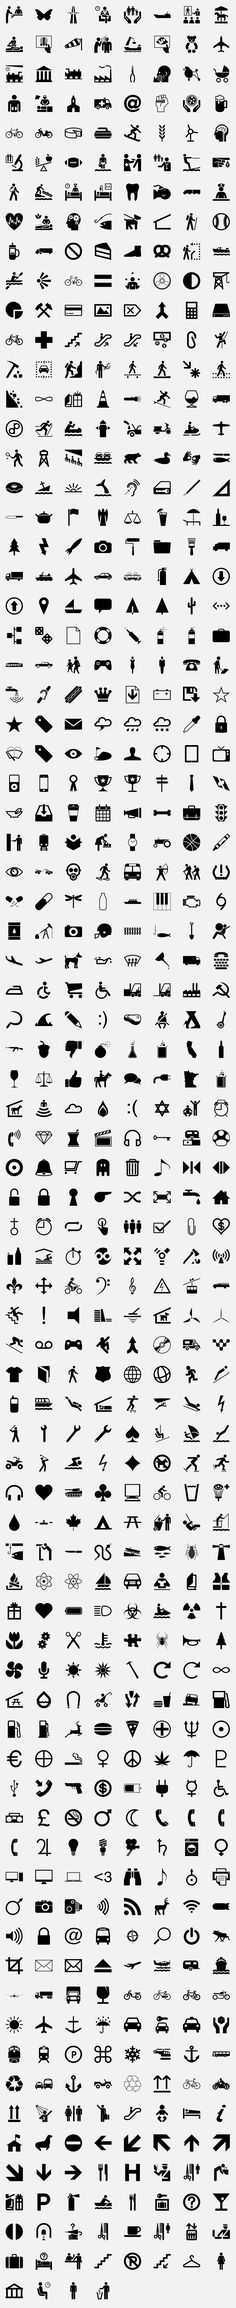 The Noun Project | online symbol library of the world's visual language